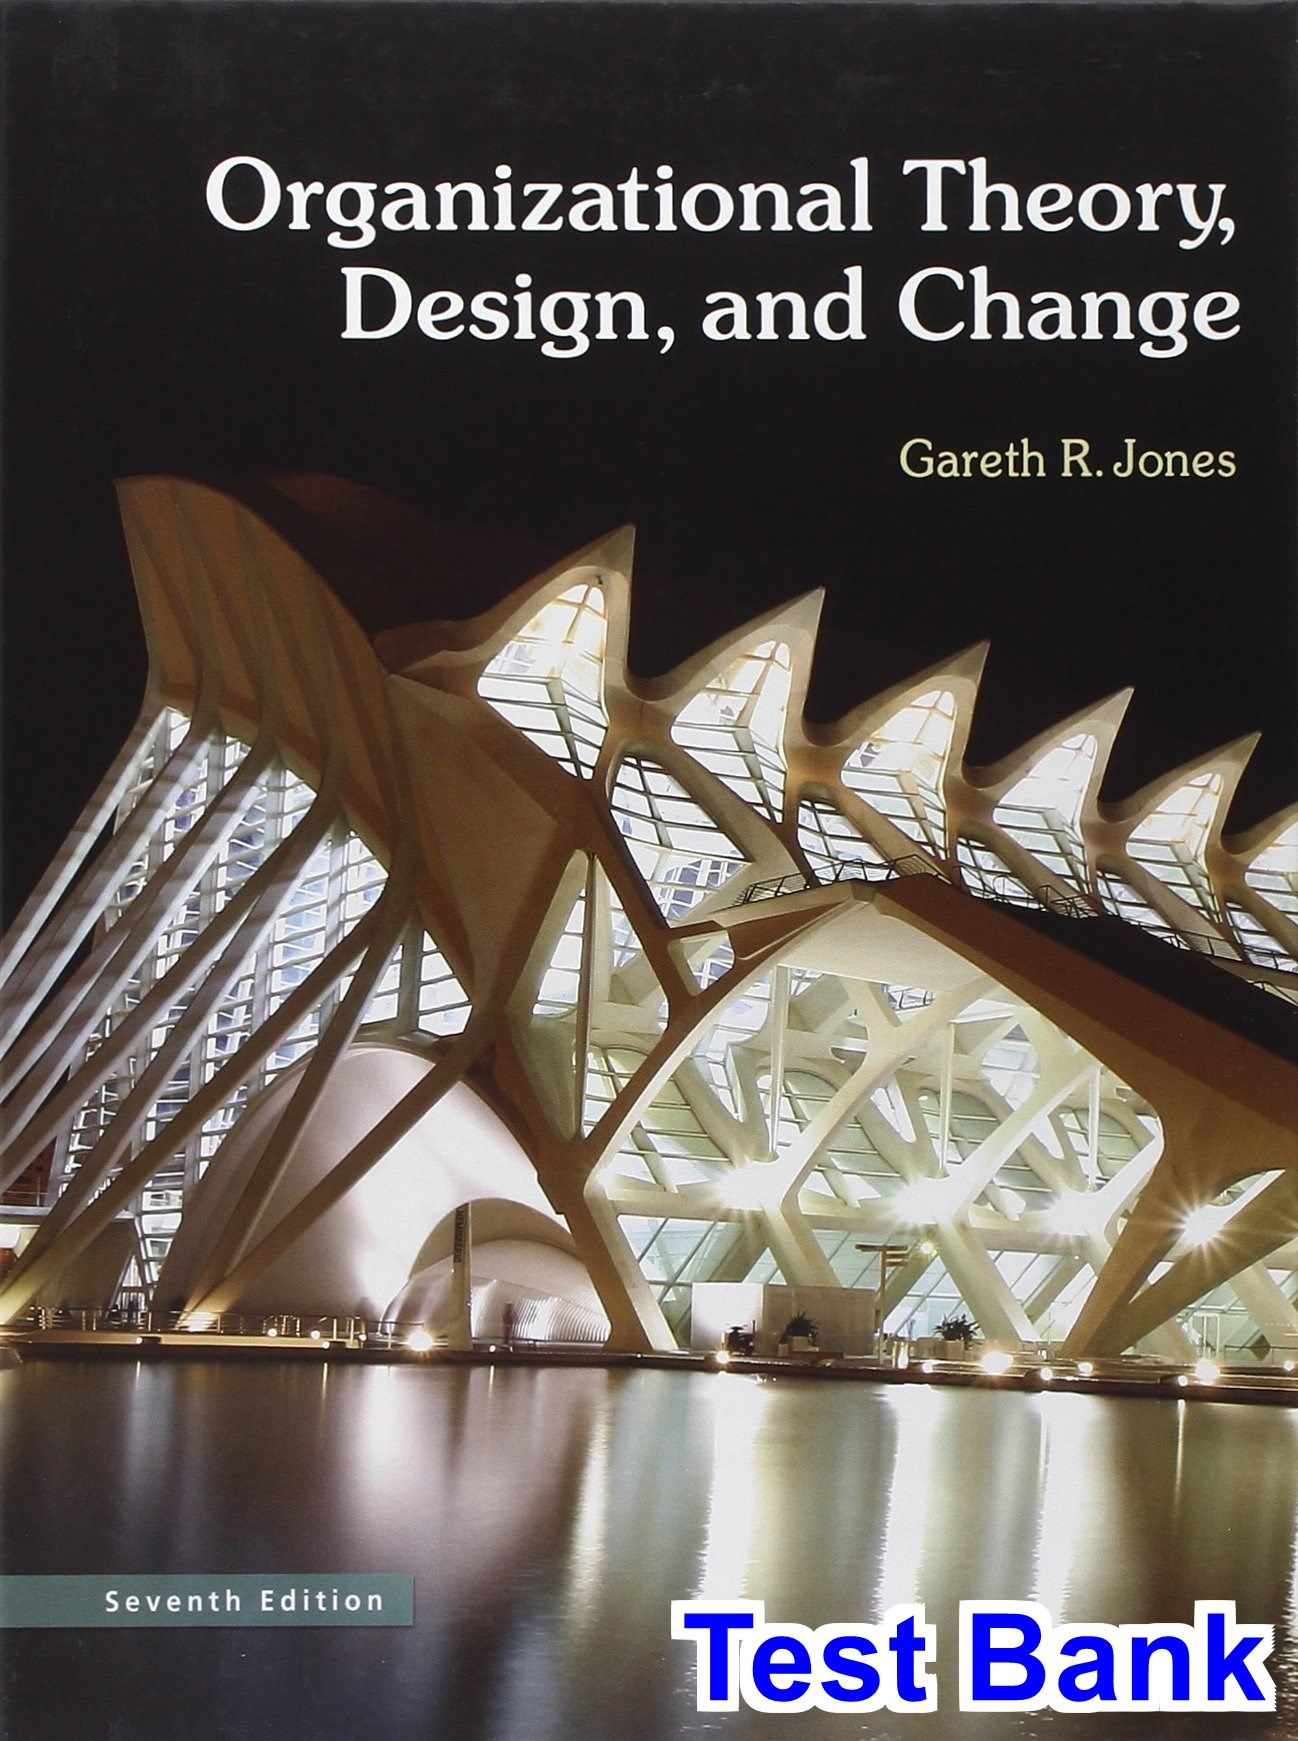 Organizational Theory Design and Change 7th Edition Jones Test Bank - Test  bank, Solutions manual, exam bank, quiz bank, answer key for textbook  download ...